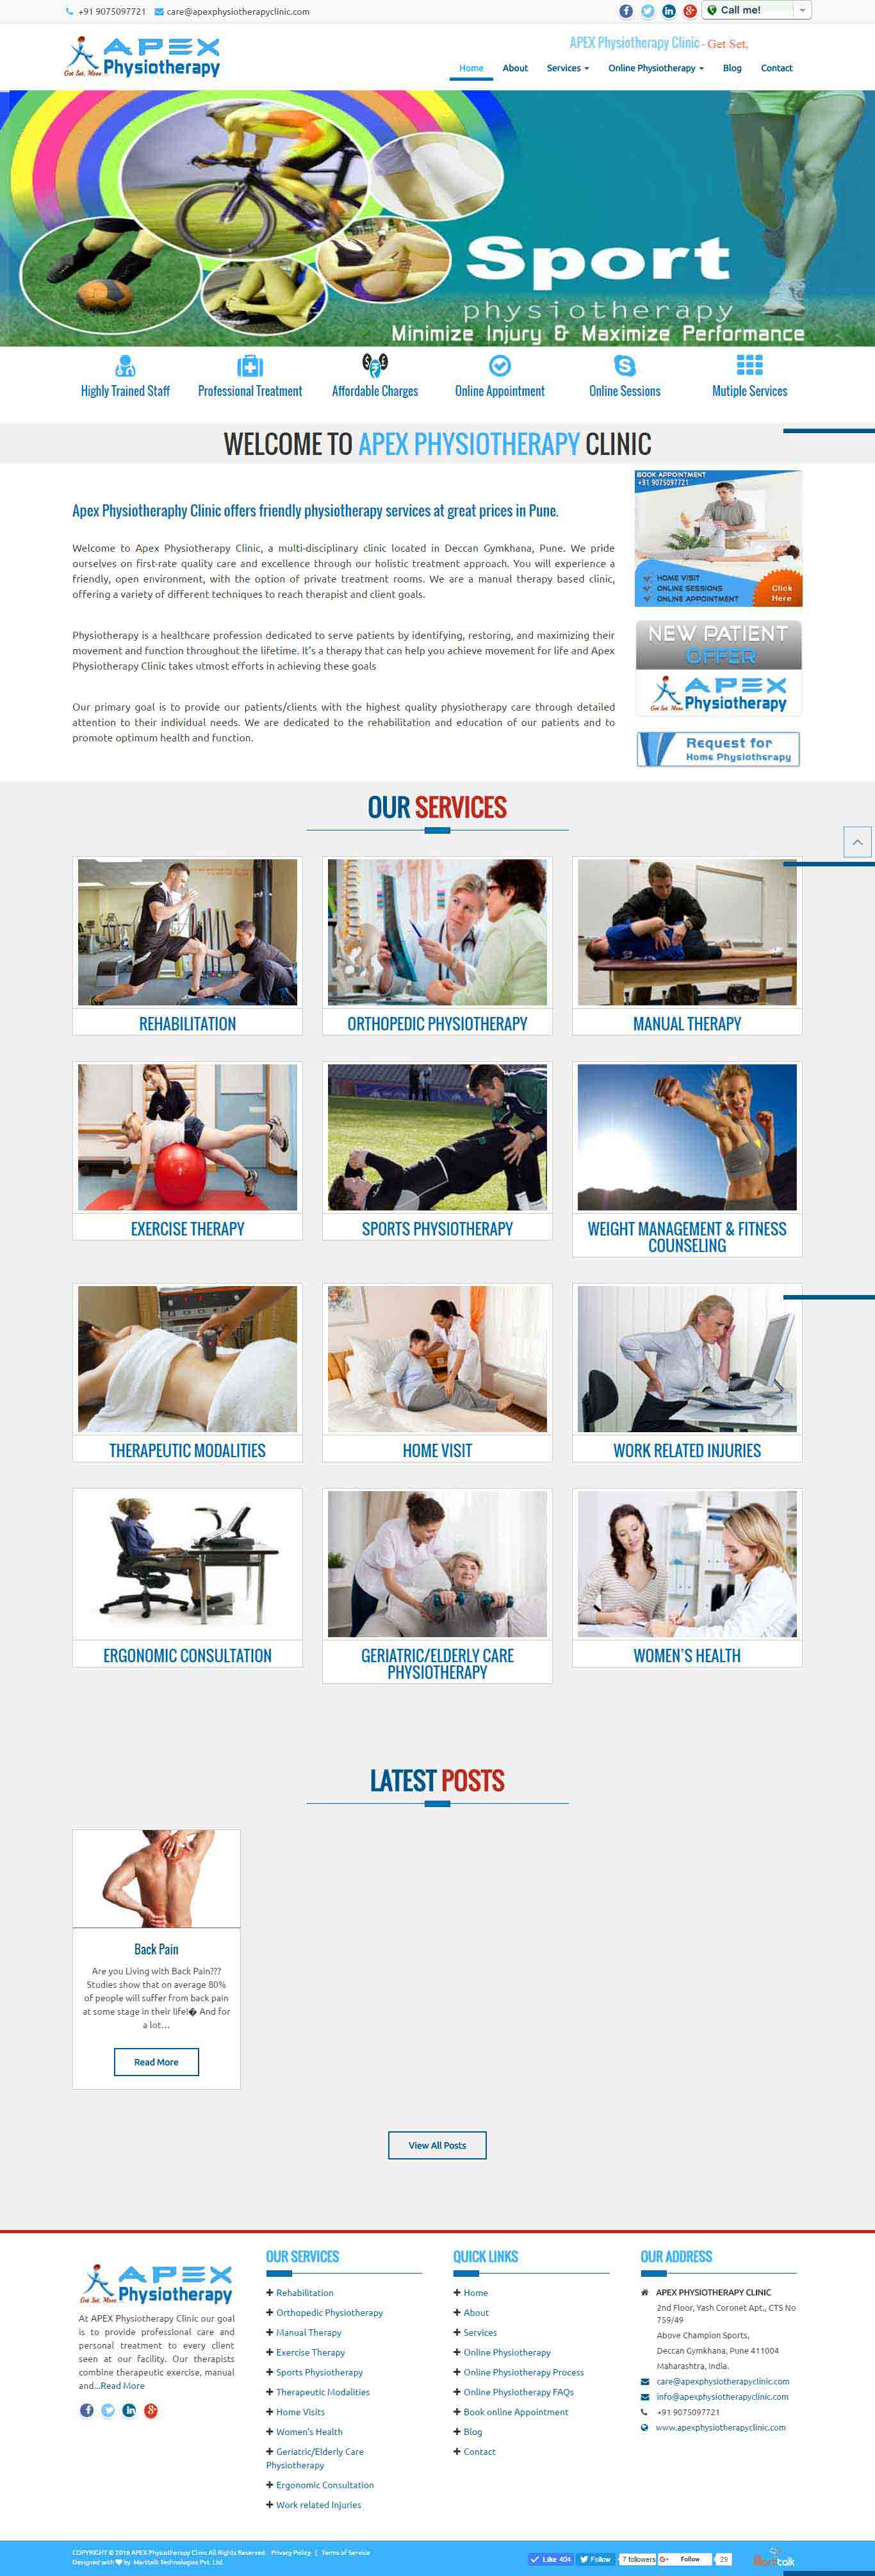 apex-physiotherapy-clinic